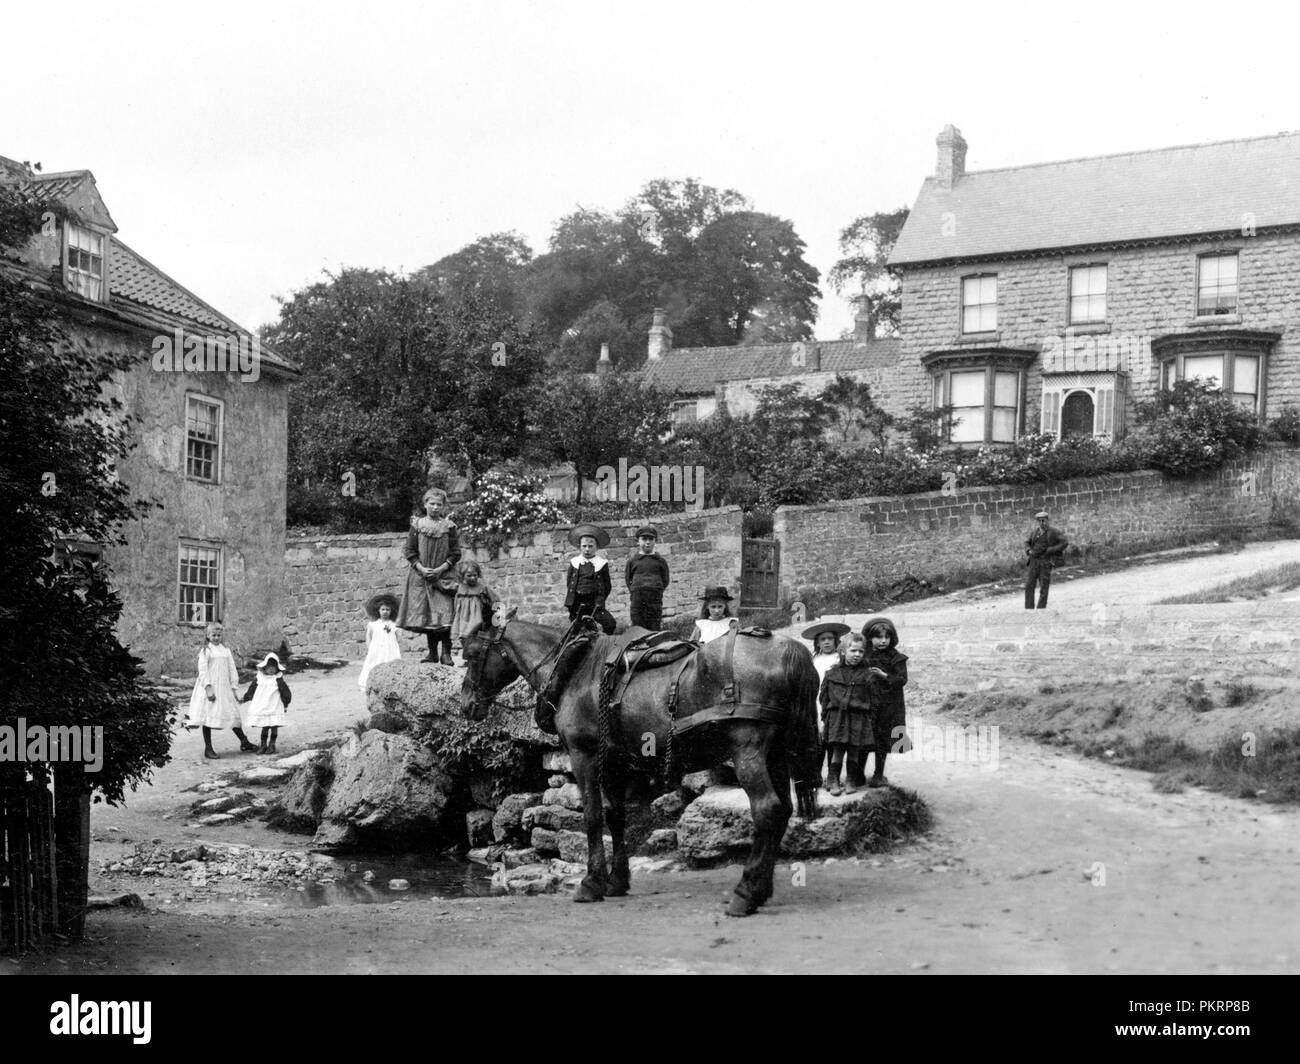 Maltby Well, early 1900s - Stock Image